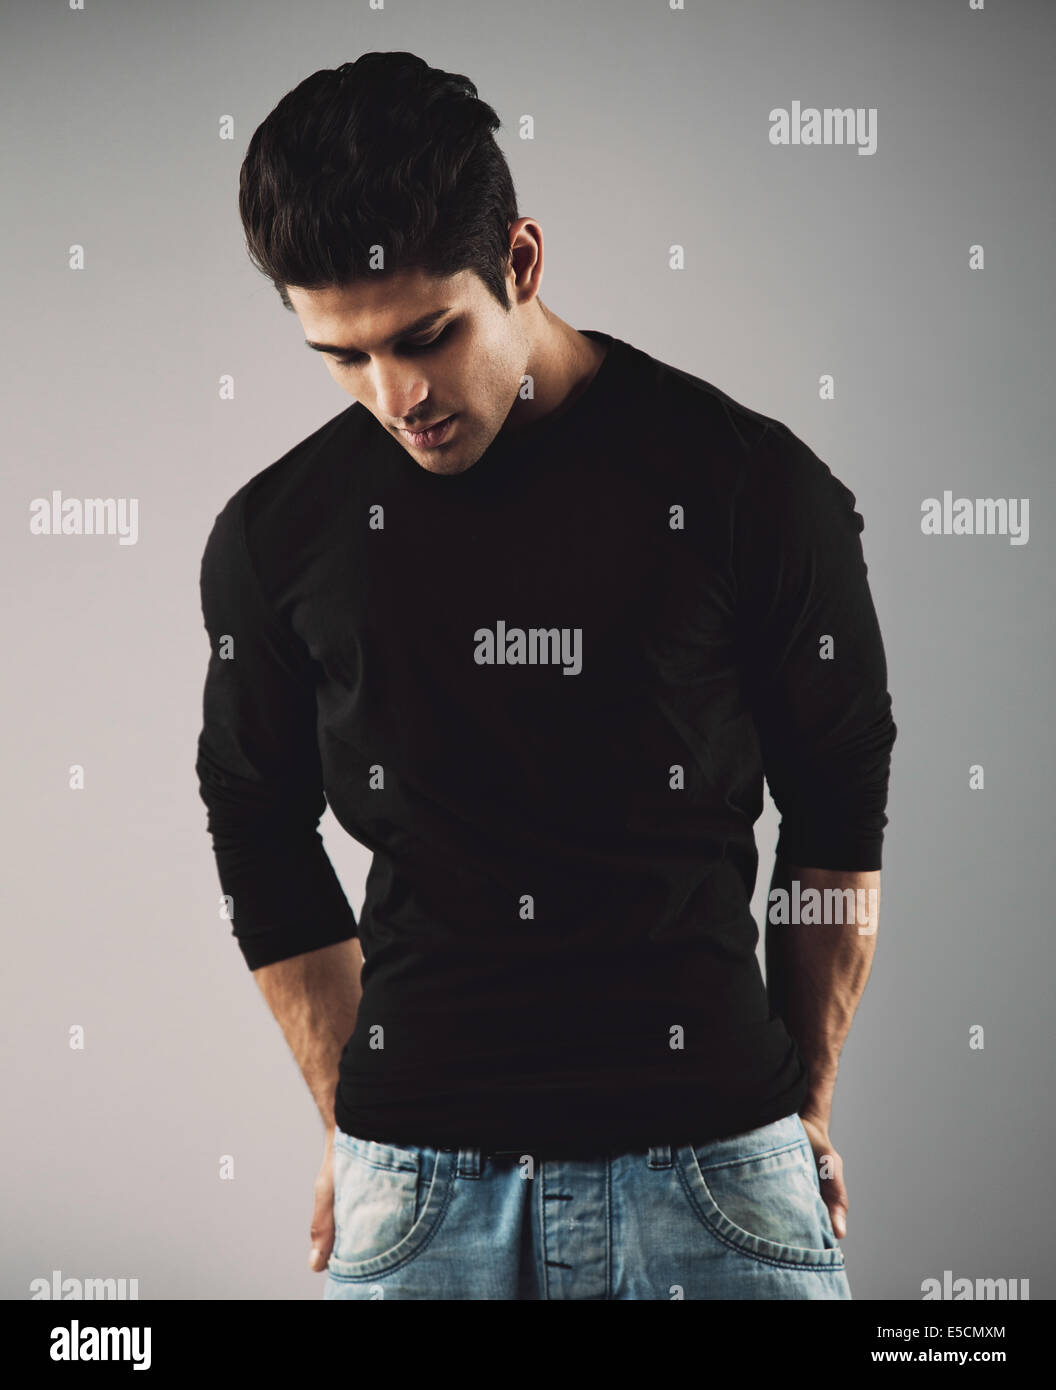 Portrait of hispanic young man standing on grey background looking down thinking. - Stock Image